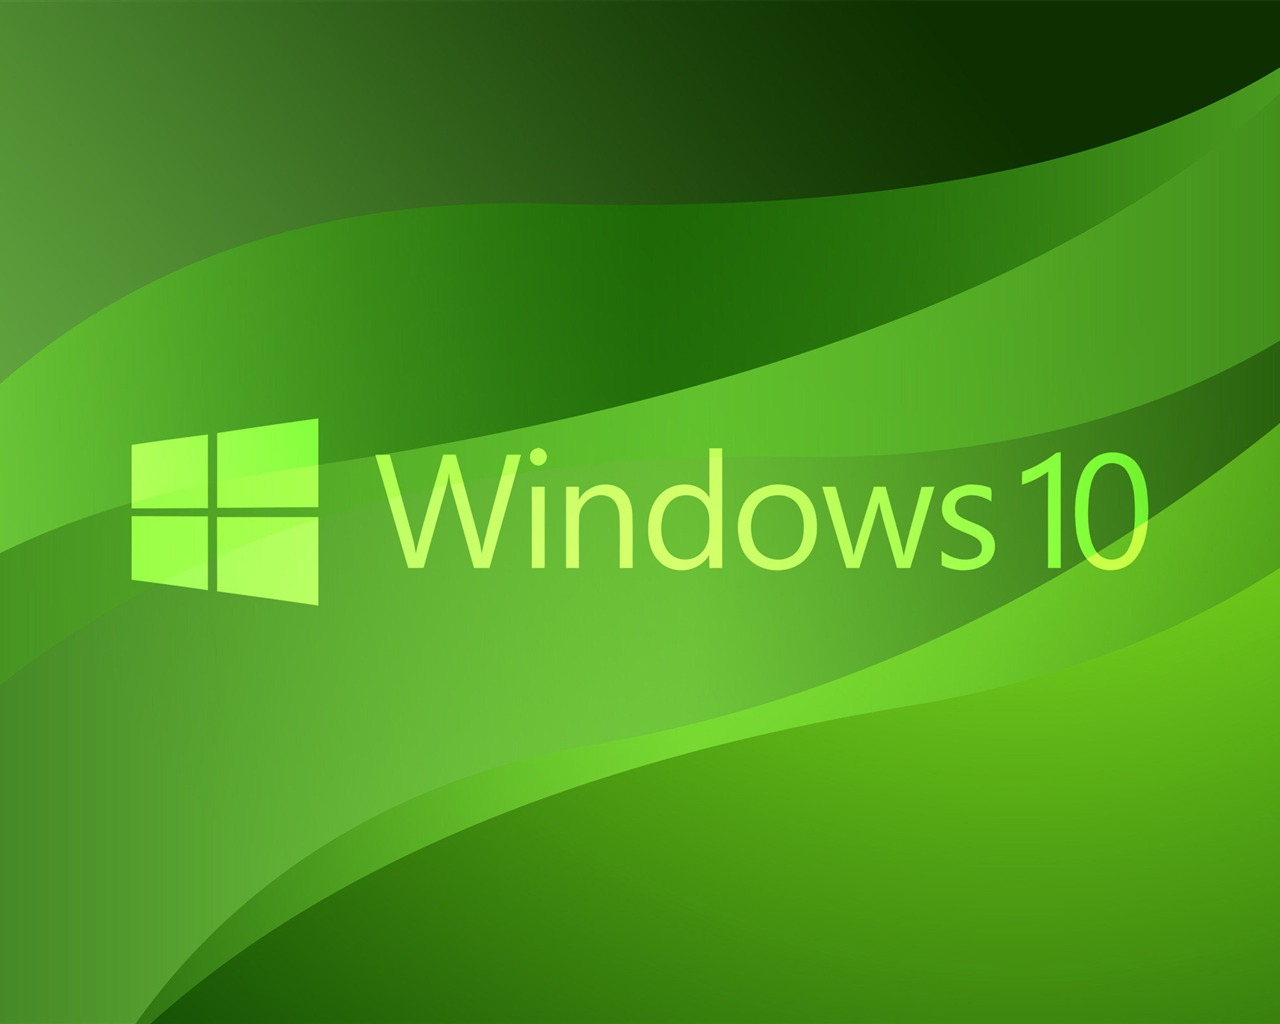 Windows 10 Hd Theme Desktop Wallpaper 15 Preview